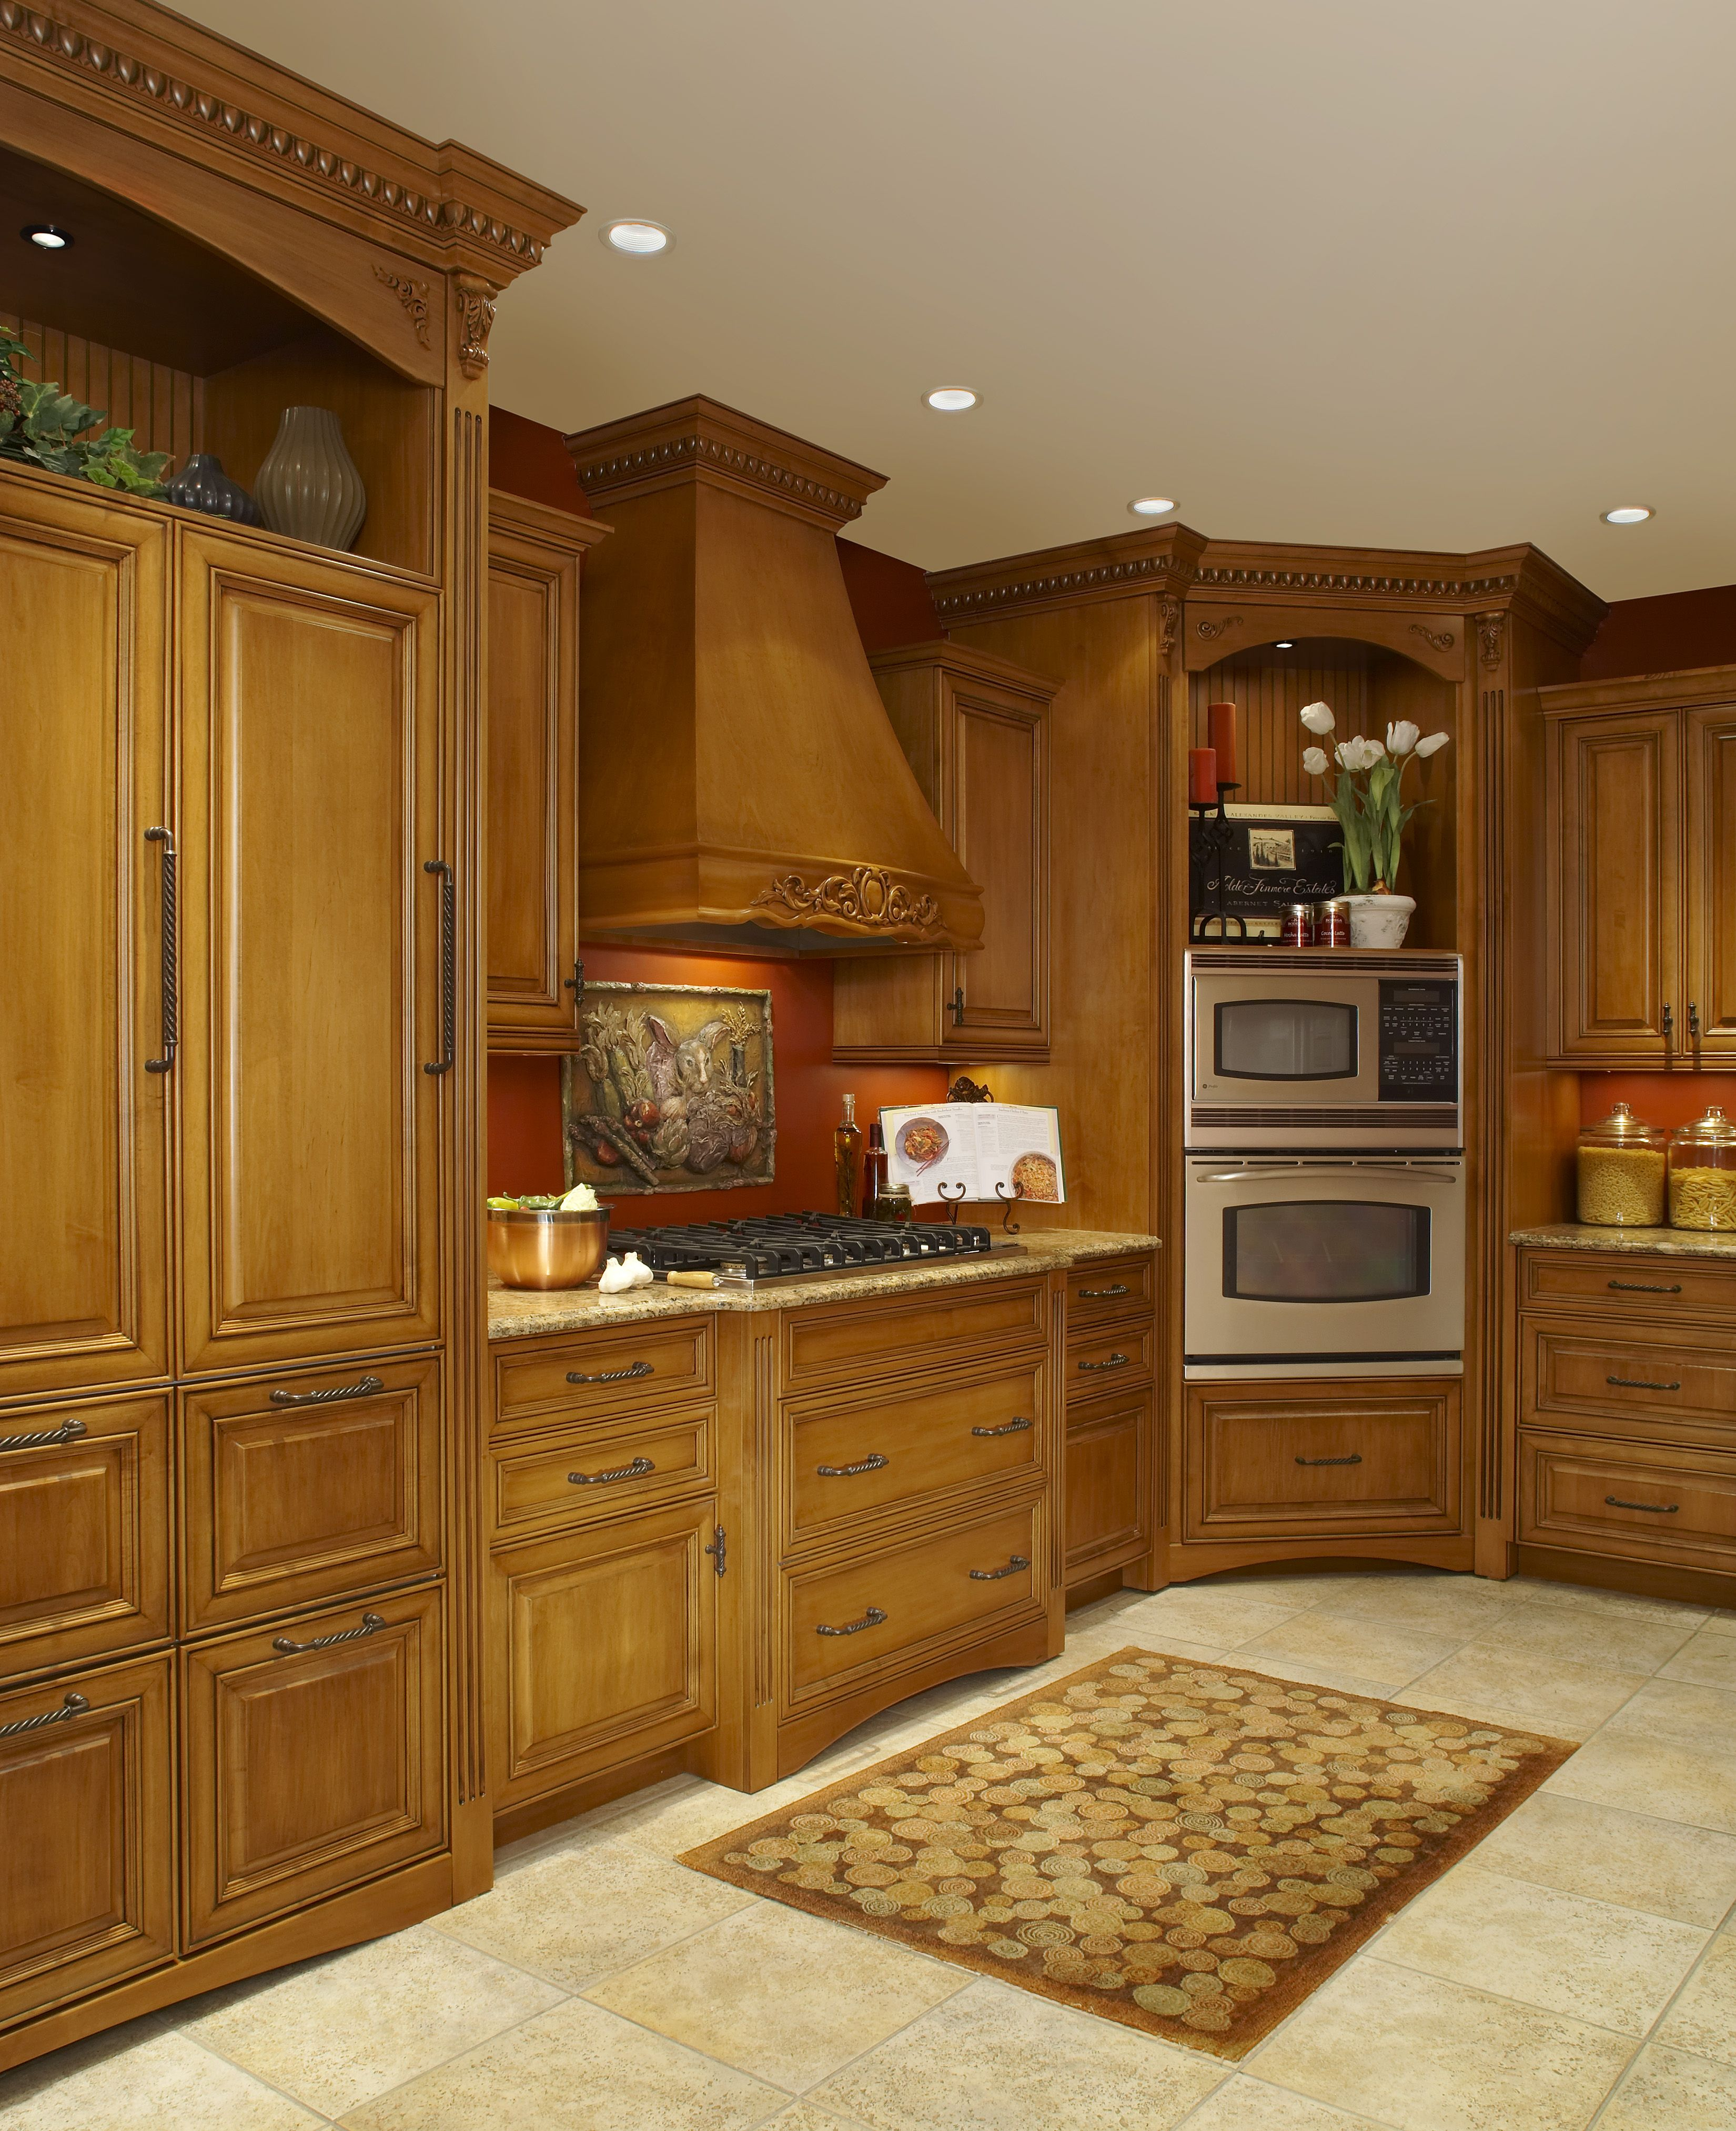 Nice Wooded Custom Cabinets Done By LaFata Located In Michigan! #LaFata # Cabinets #